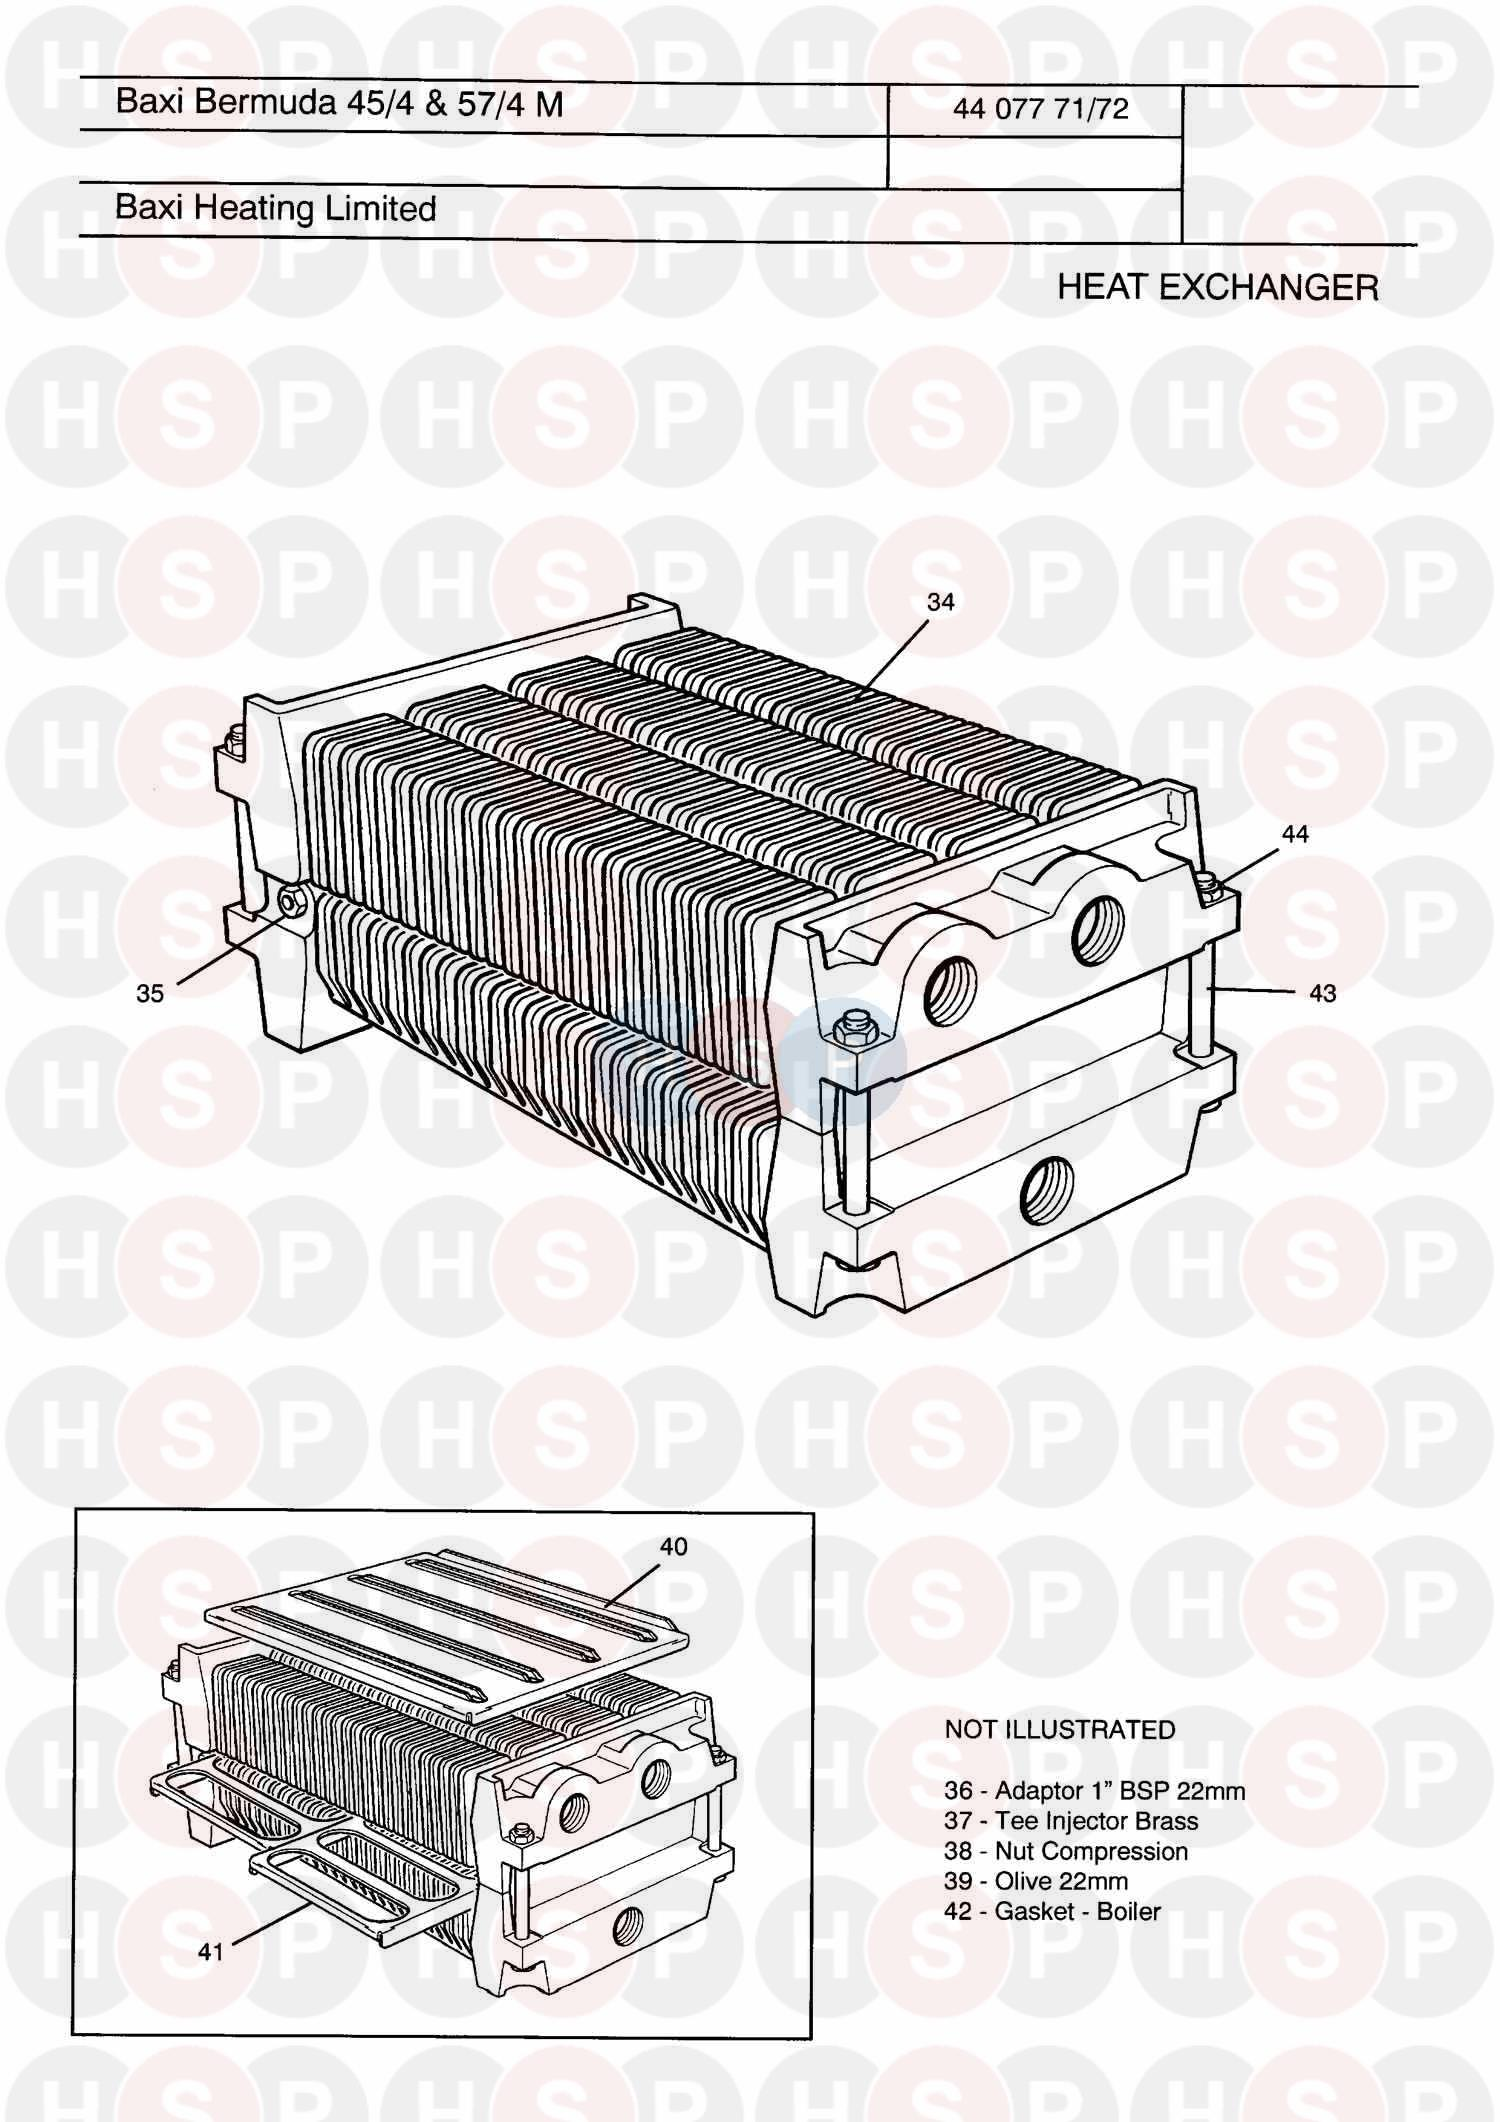 Baxi BERMUDA 45/4 MANUAL (HEAT EXCHANGER) Diagram